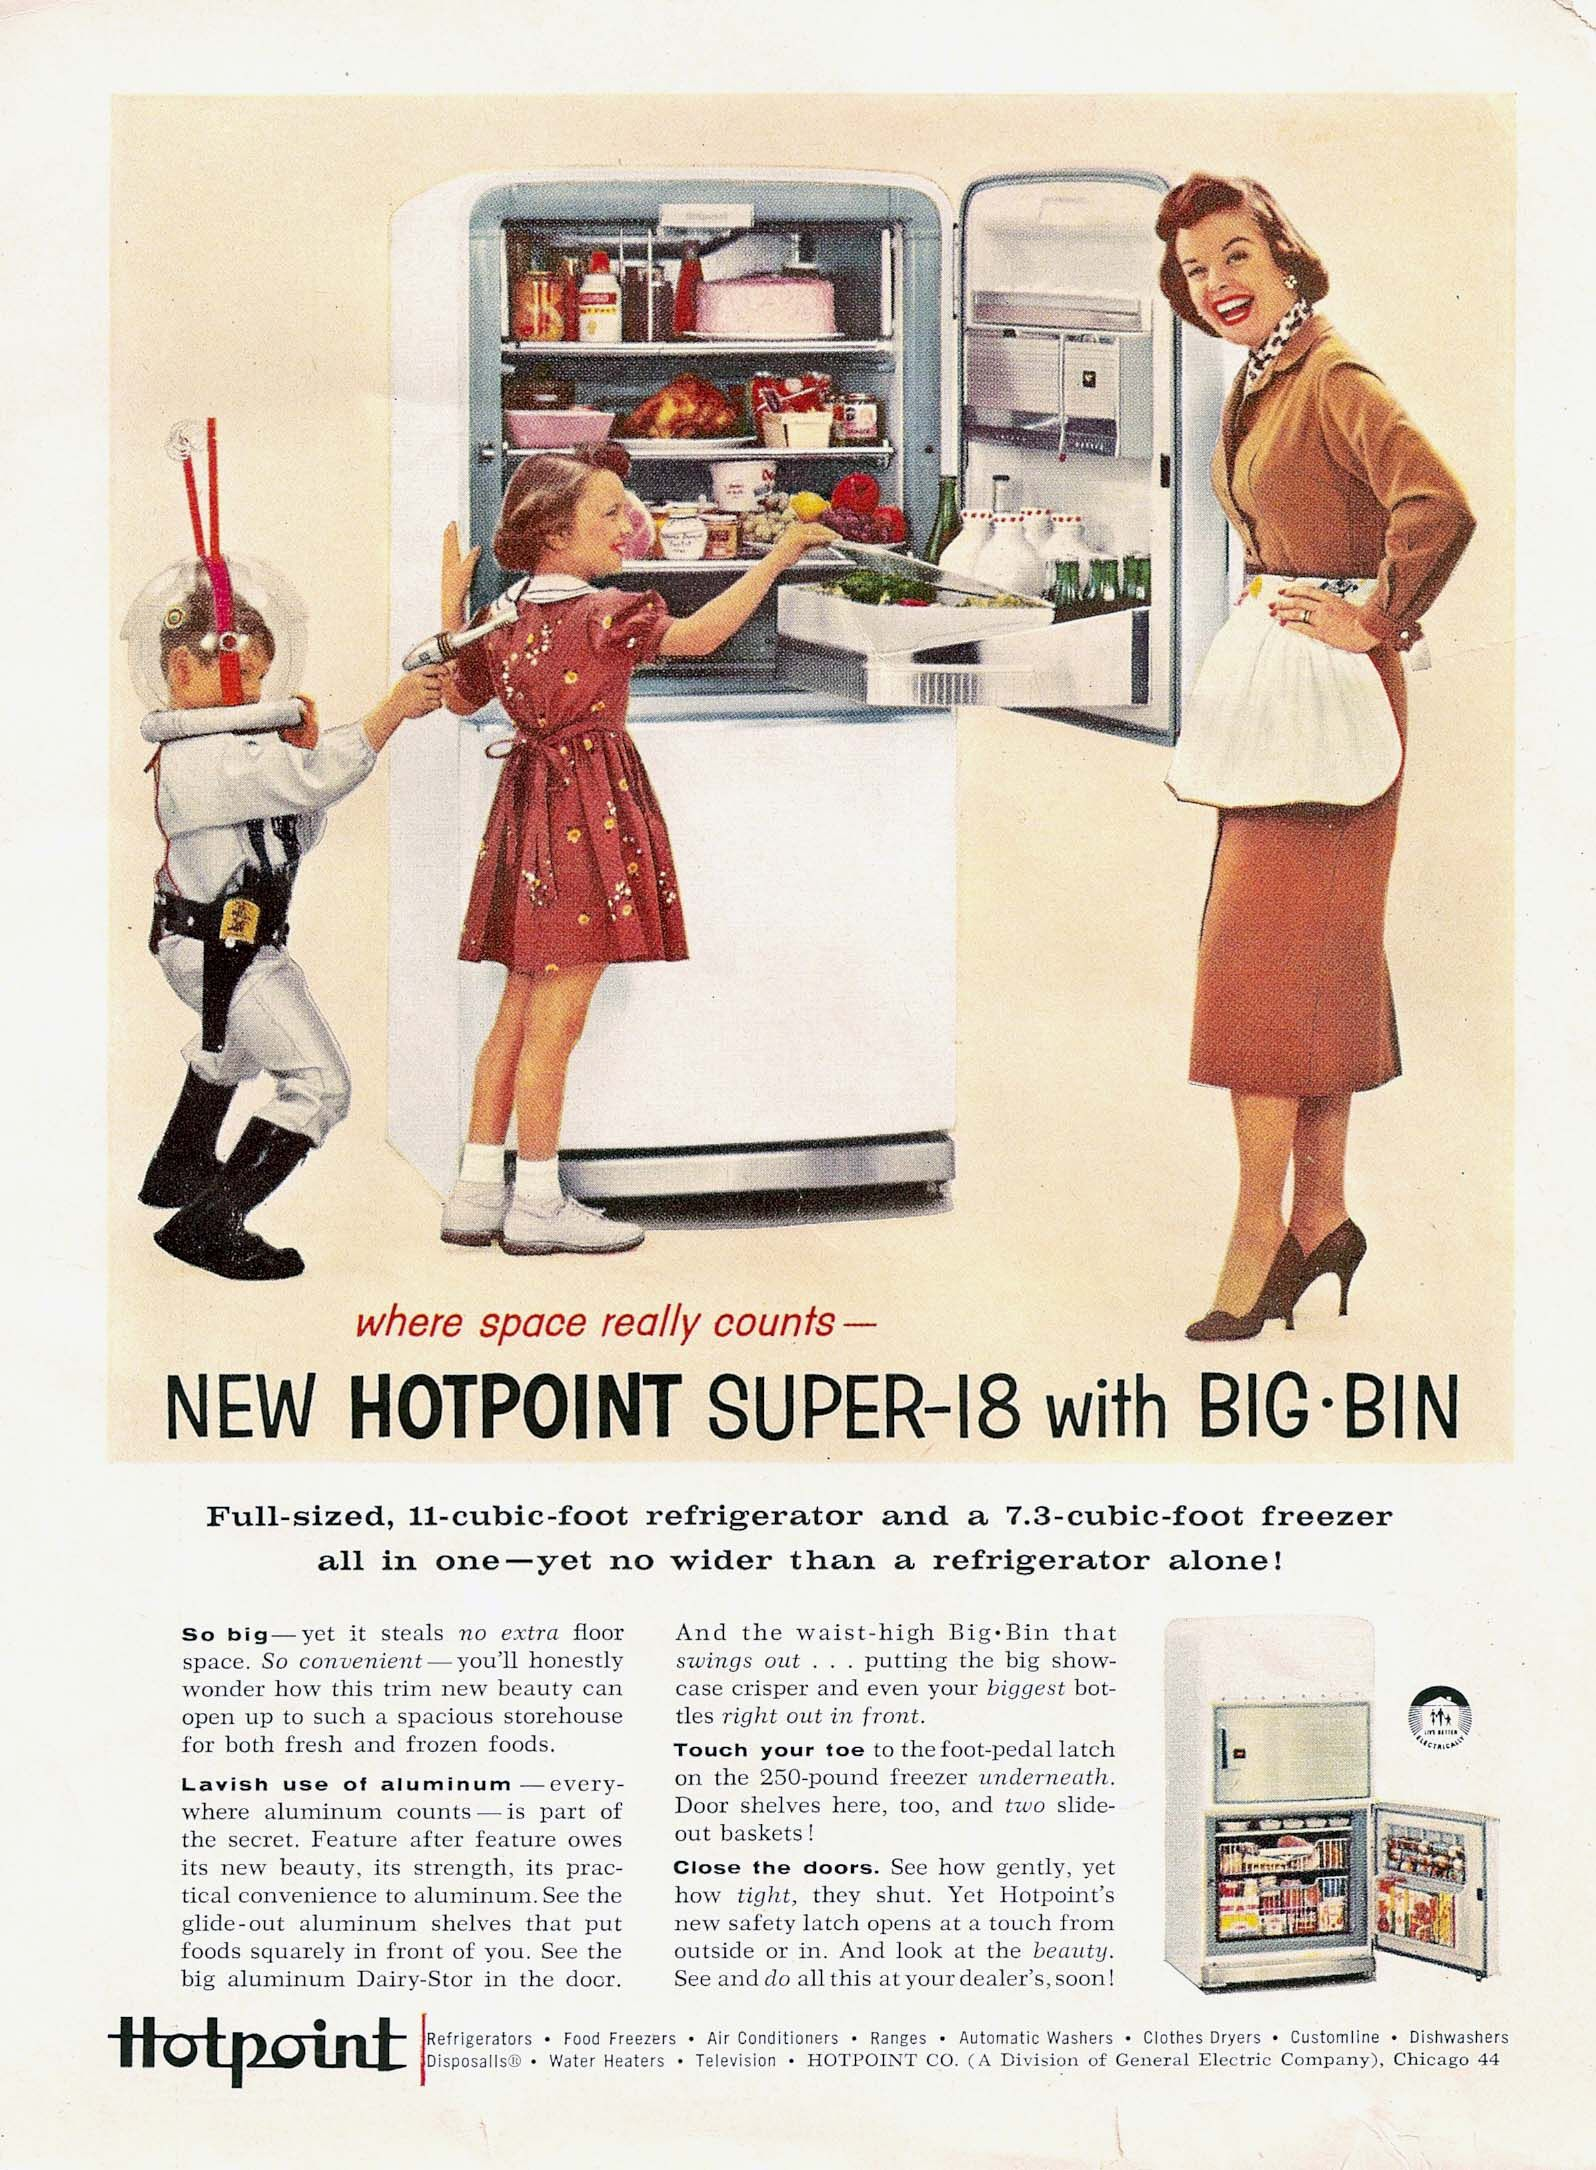 Hotpoint Ad, 1950s | Vintage Appliance Ads | Vintage ads